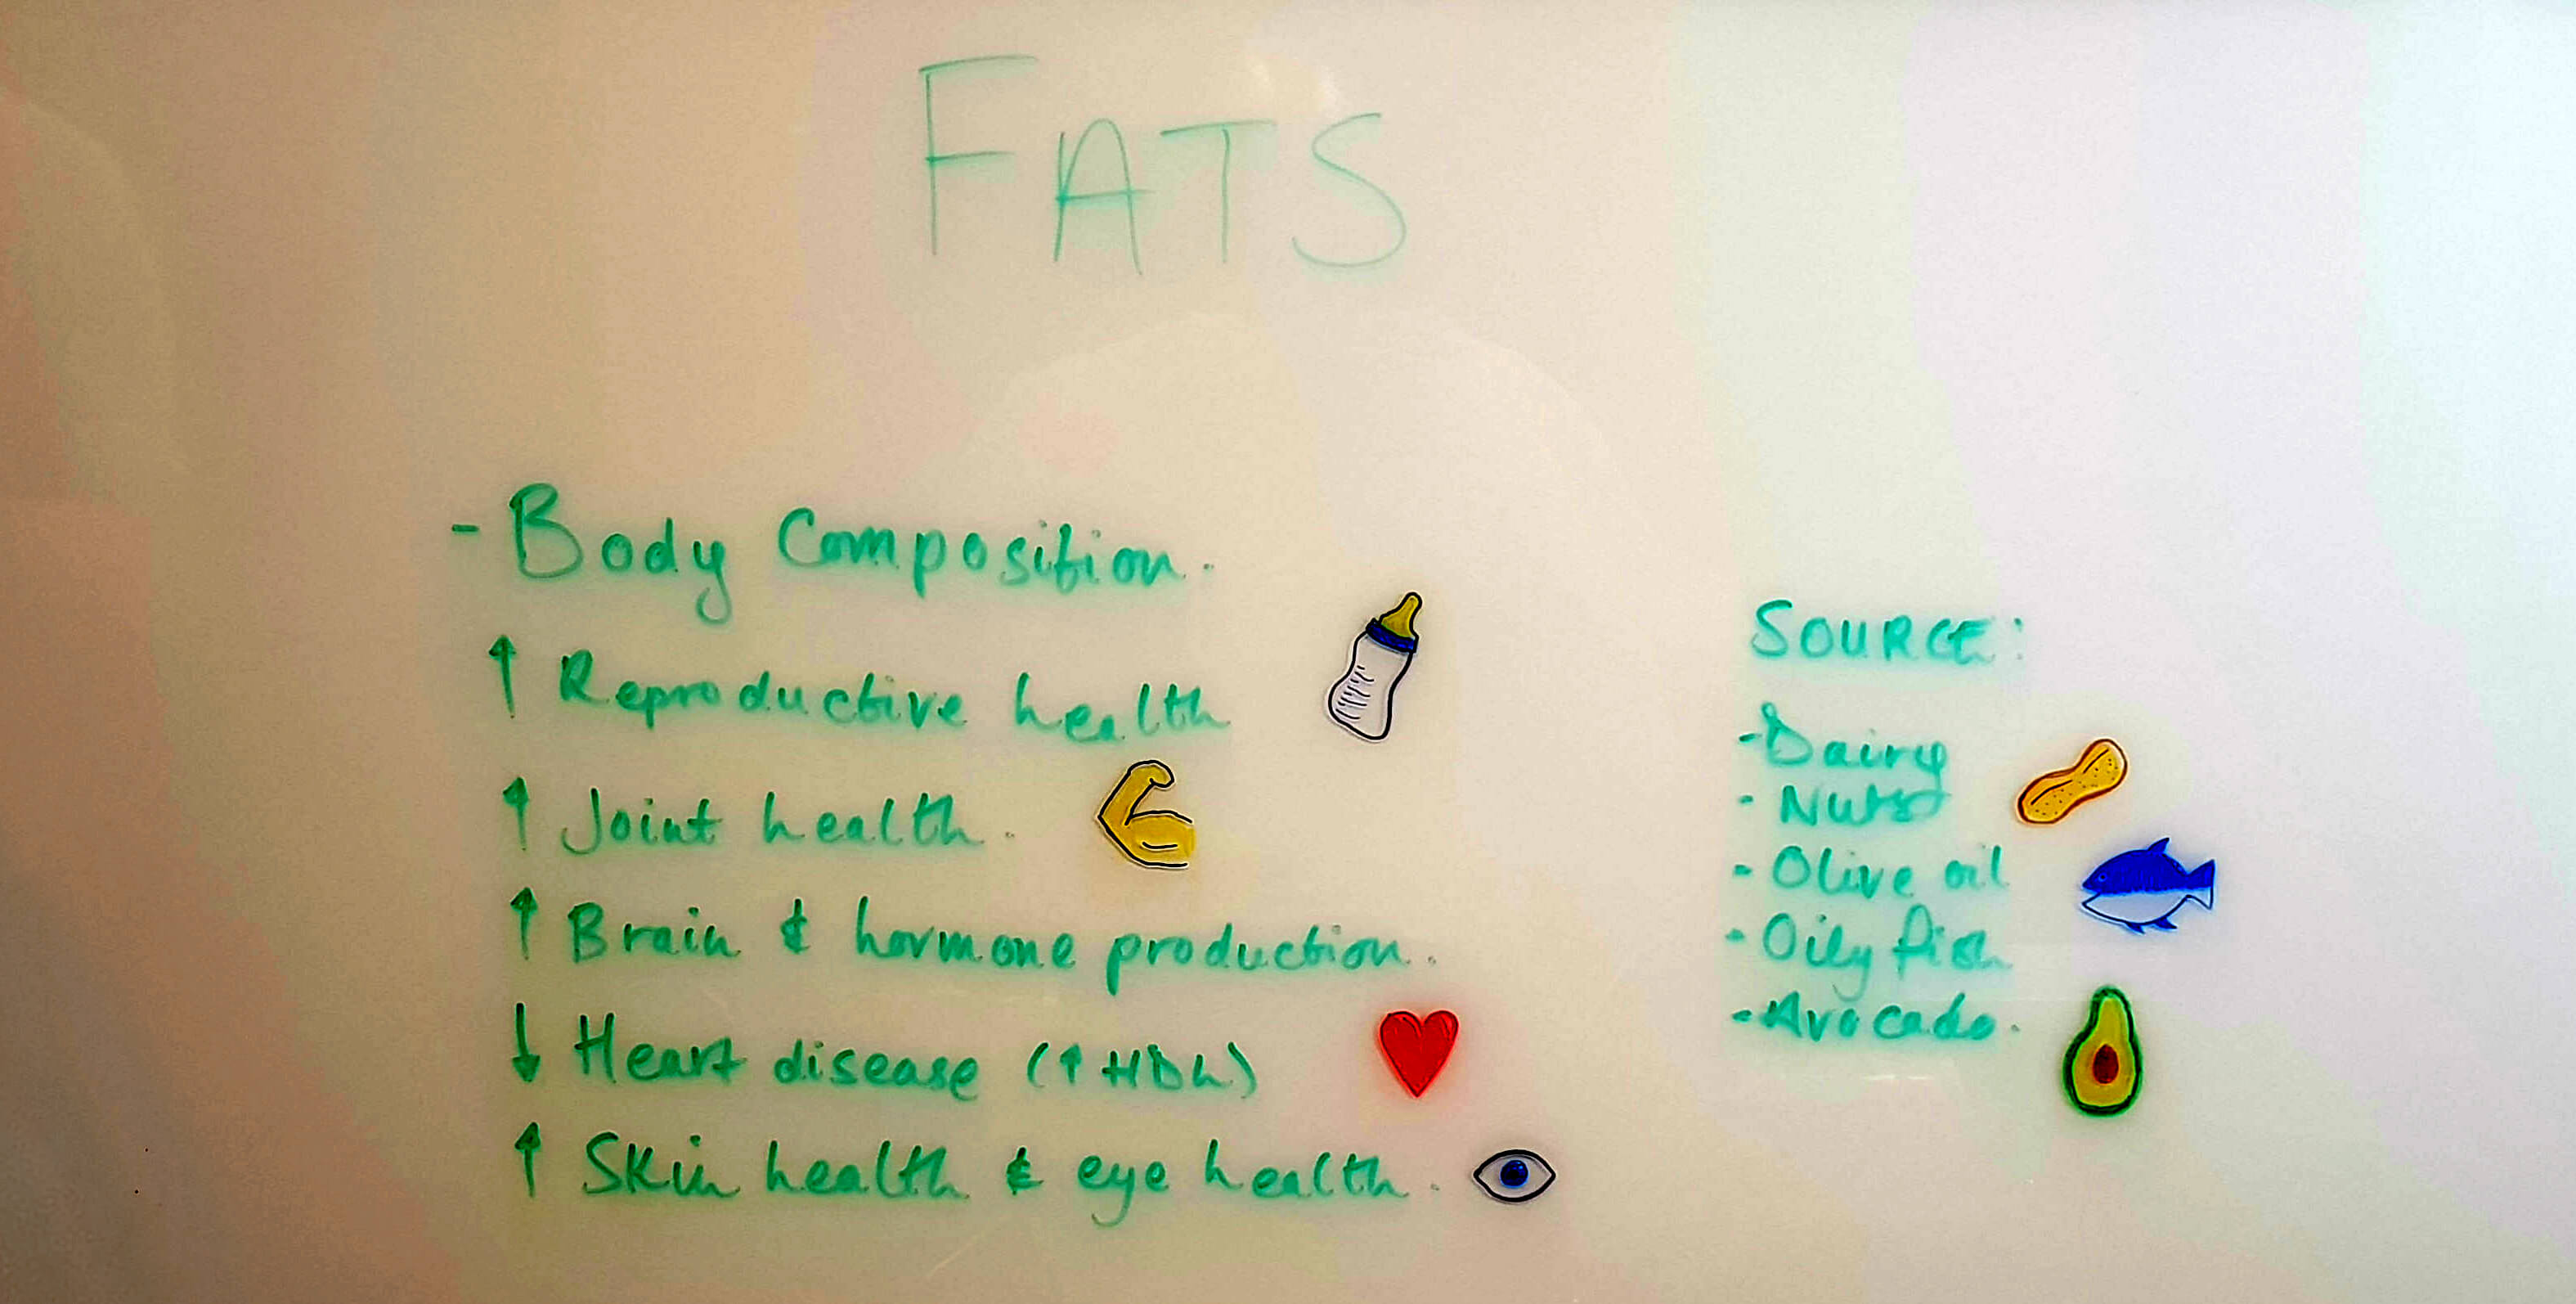 Fats help with Body composition, reproductive health and hormone production